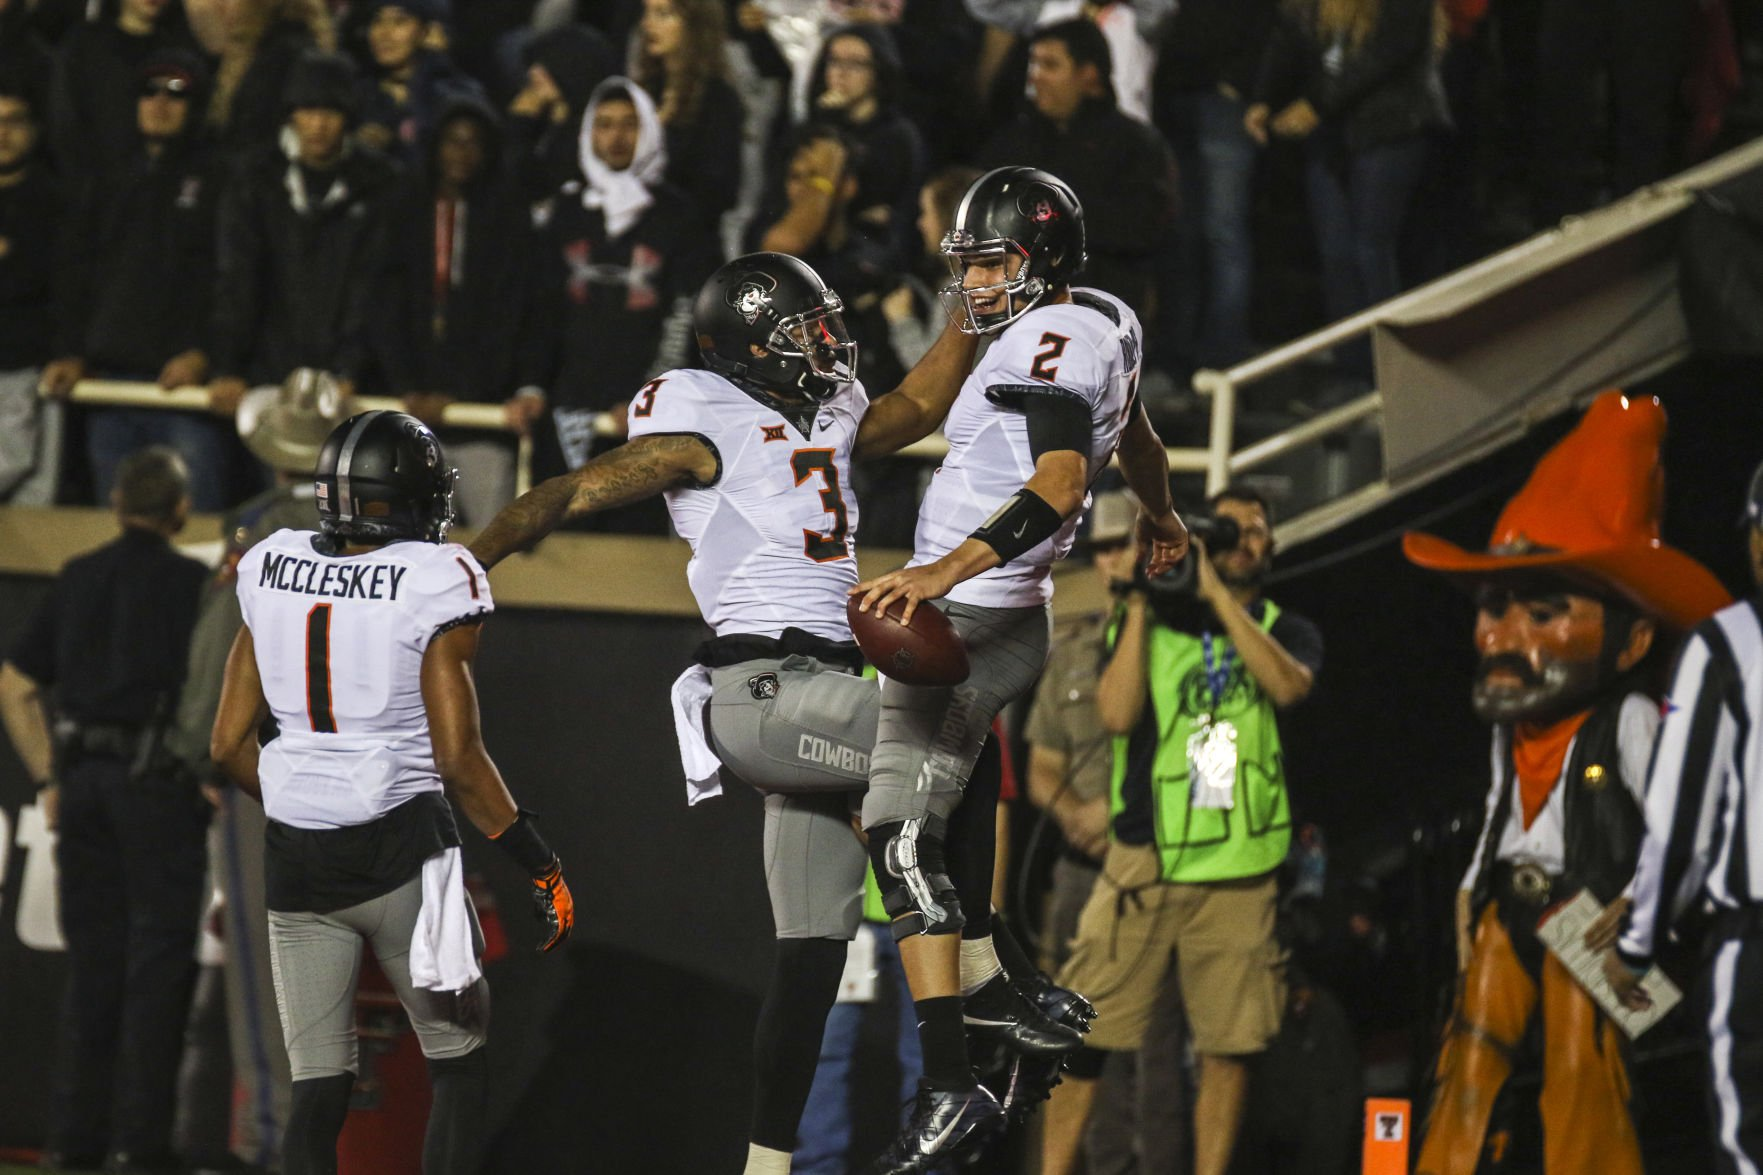 Twitter reacts to gutsy, surprise onside kick by Texas Tech